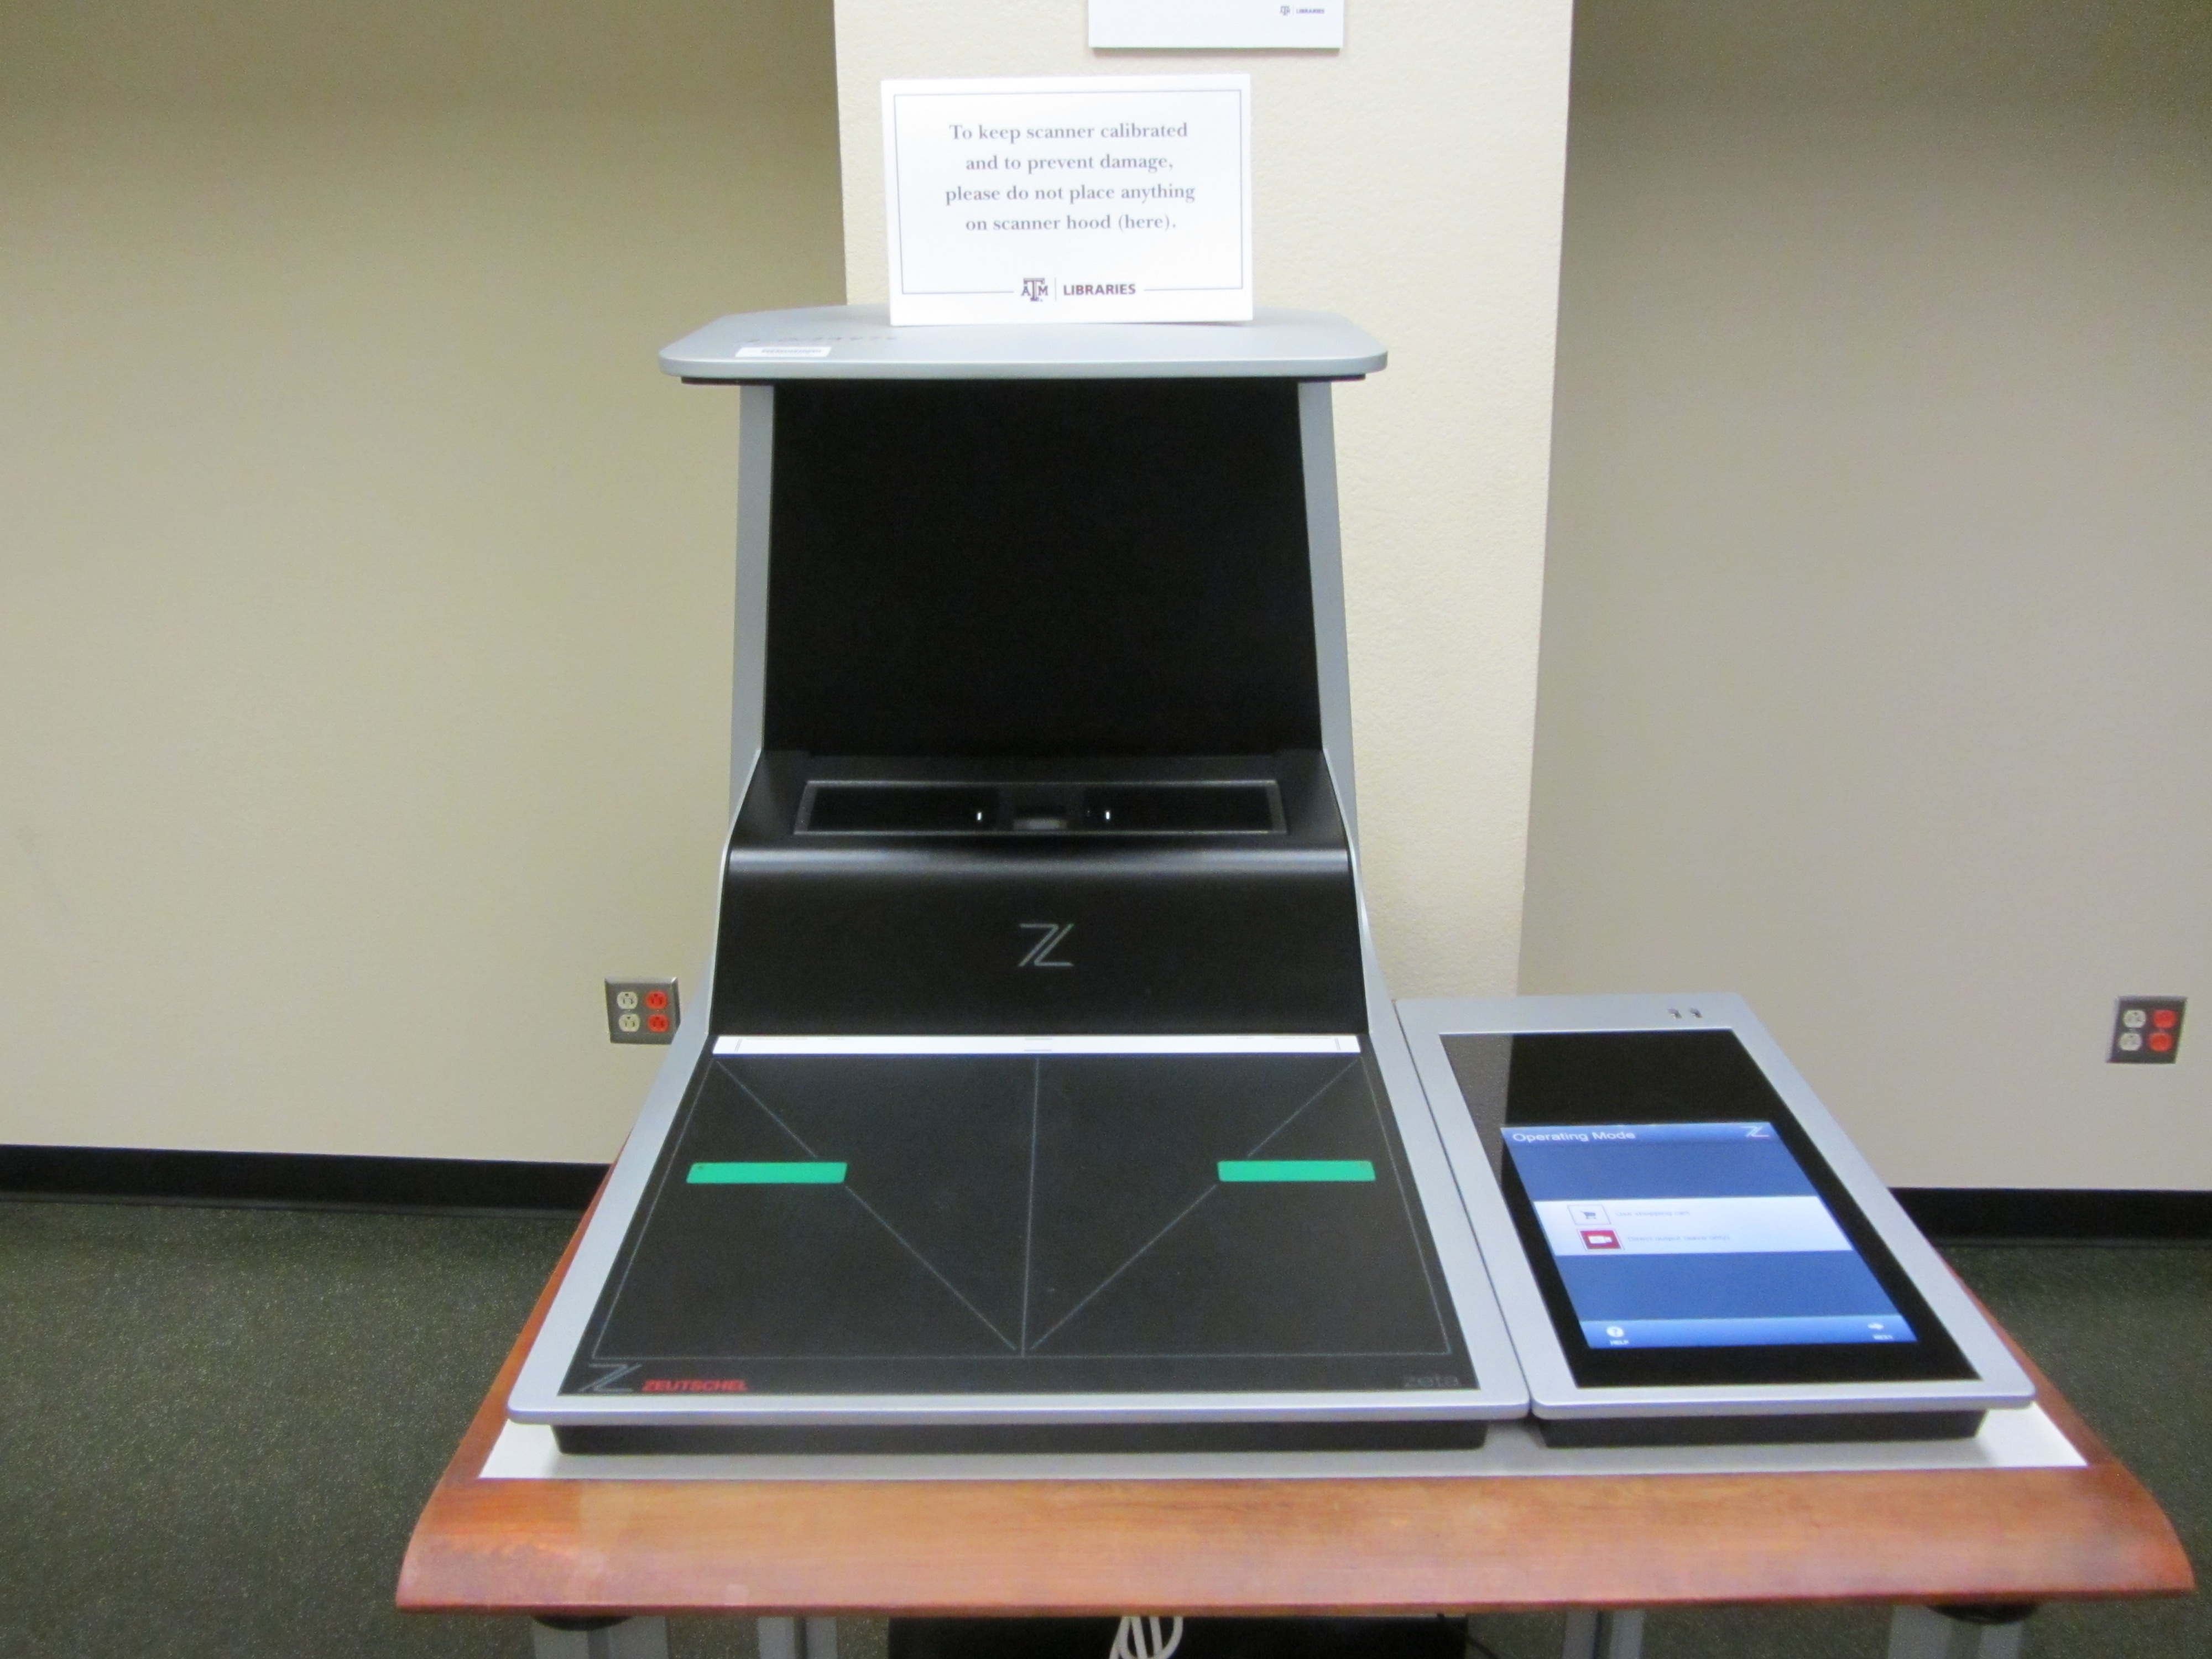 Zeta scanner in the Evan's Library at the Texas A&M University.